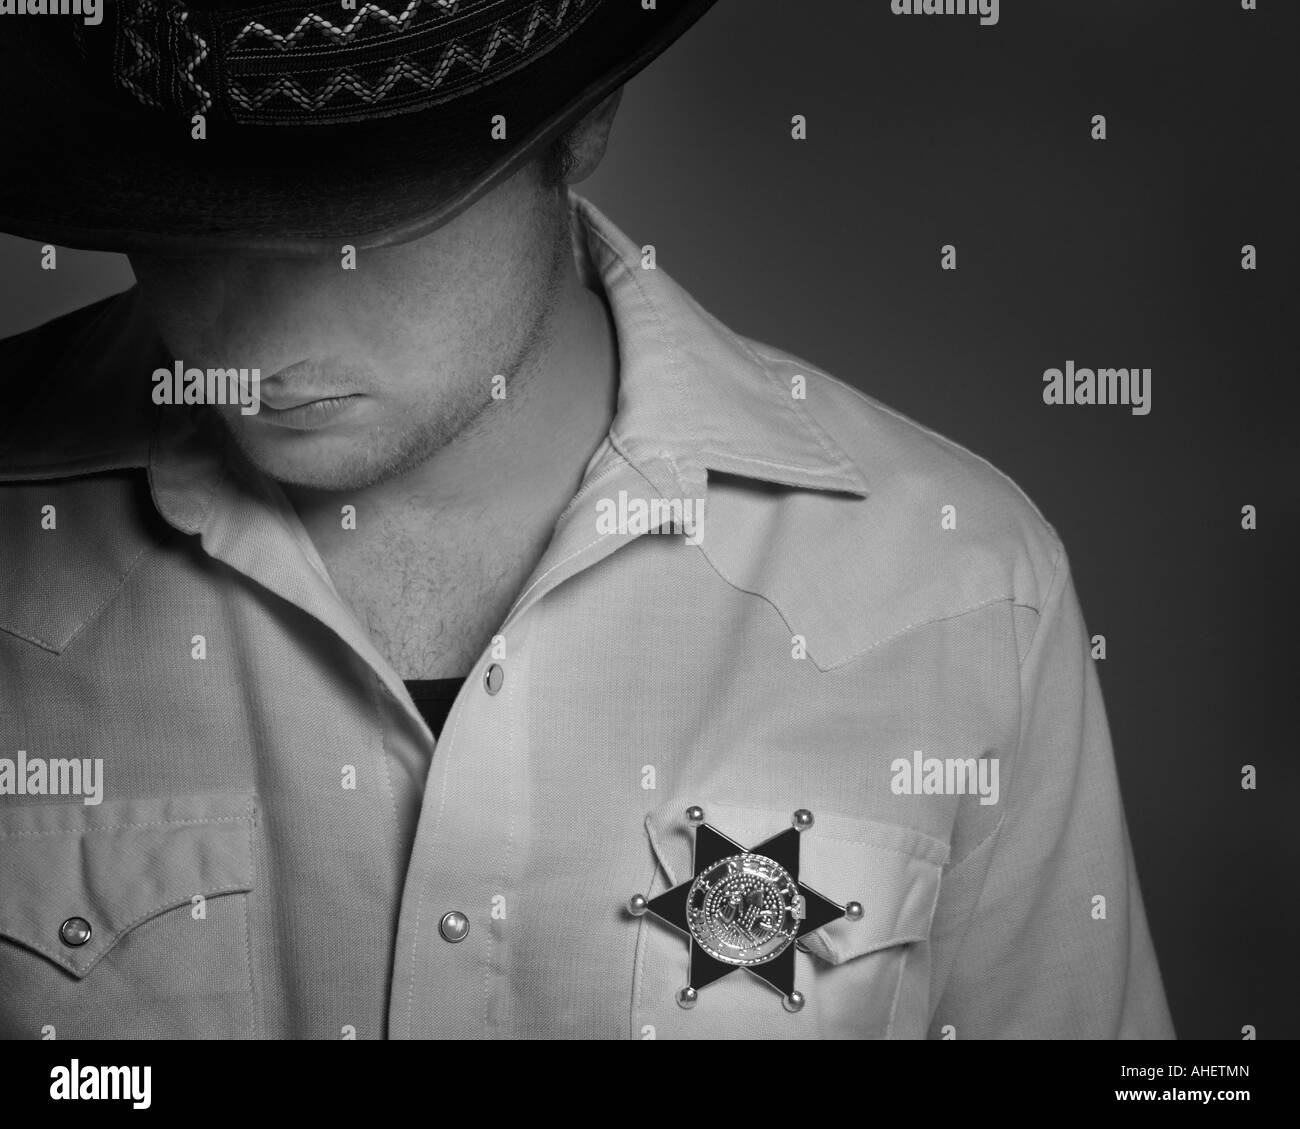 Cowboy looking down under hat with Sheriff's badge on shirt - Stock Image